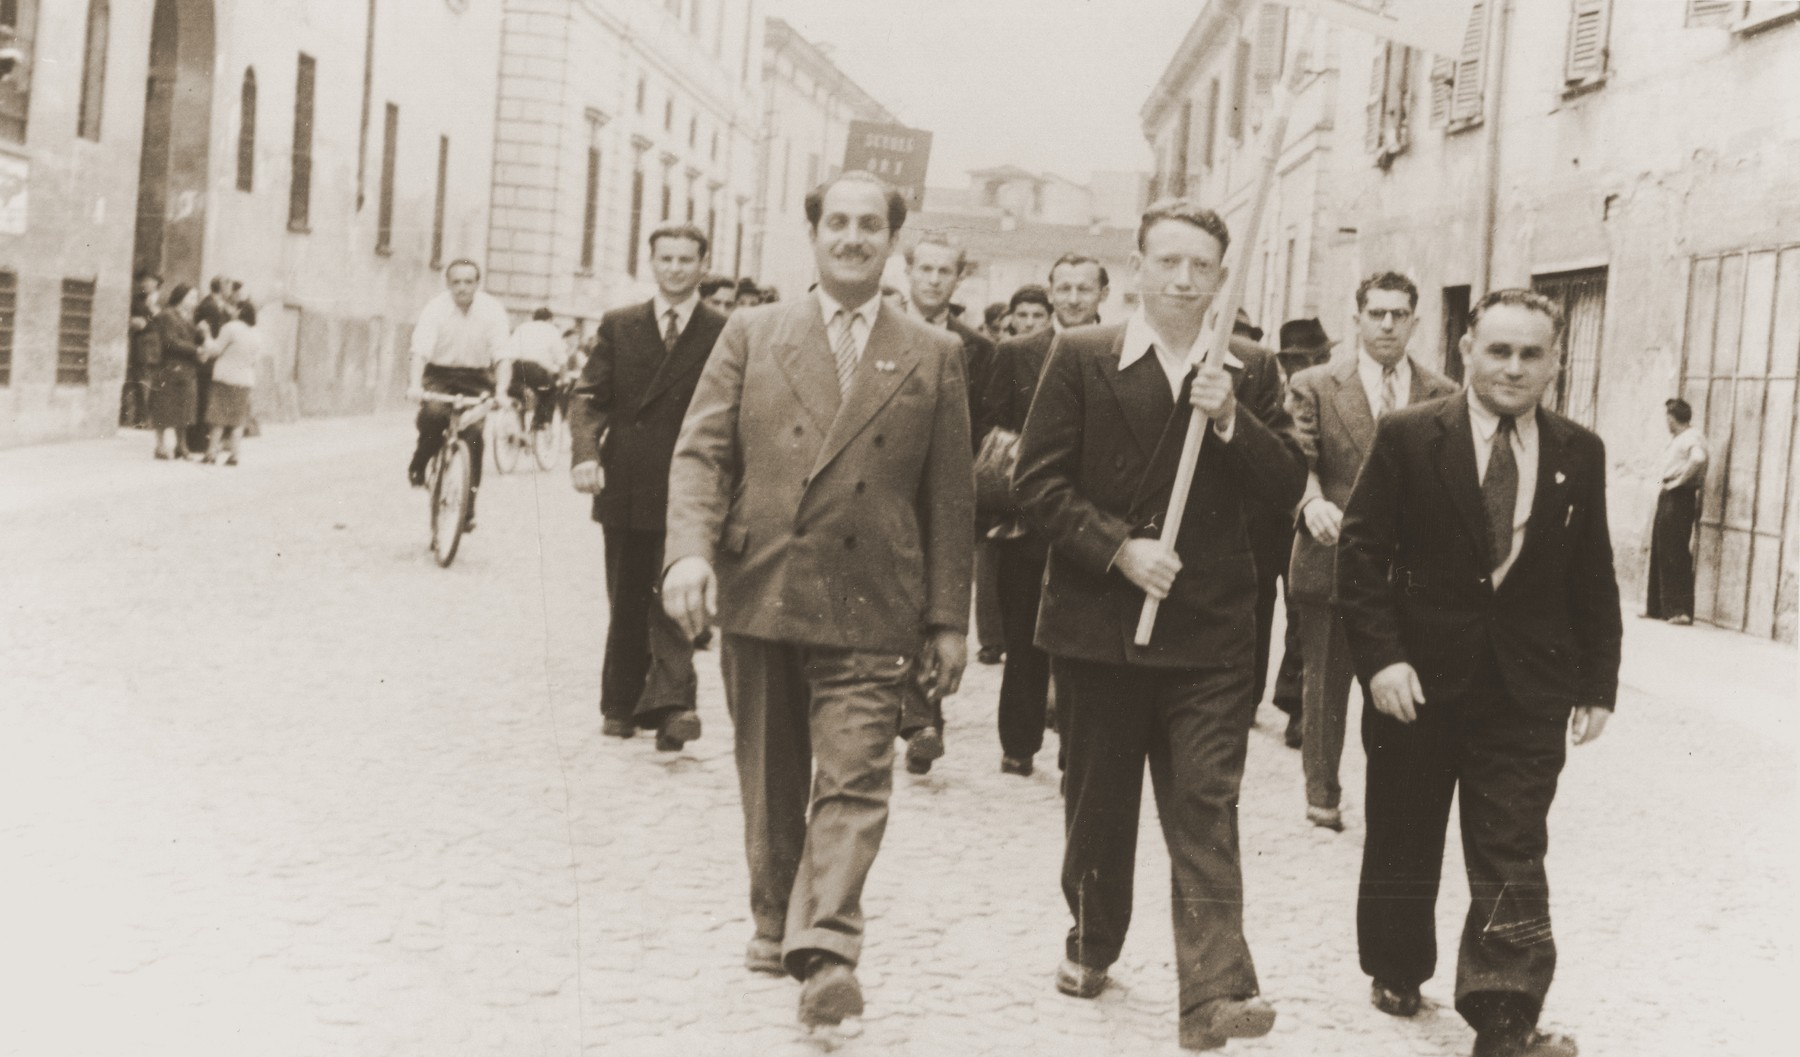 Jewish DPs in the Cremona displaced persons camp take part in a march advocating the creation of a Jewish state.    Among those pictured is Motel Leikach (front row, right).